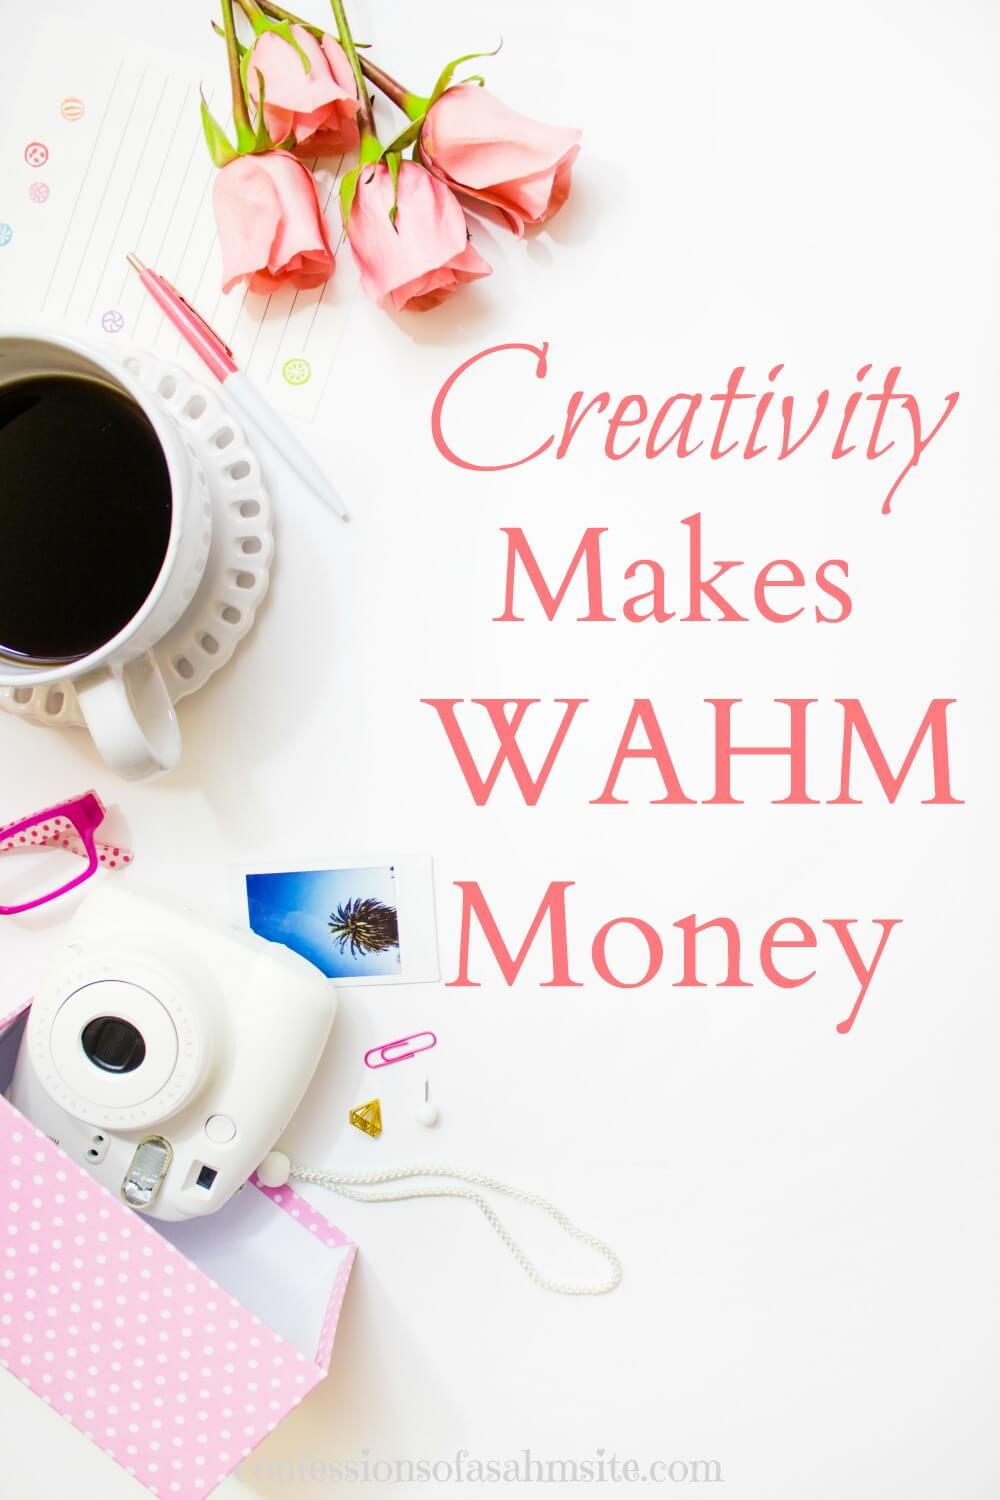 Creativity Makes WAHM Money. Do you have a creative side? Read how this mom makes money from doing what she loves.